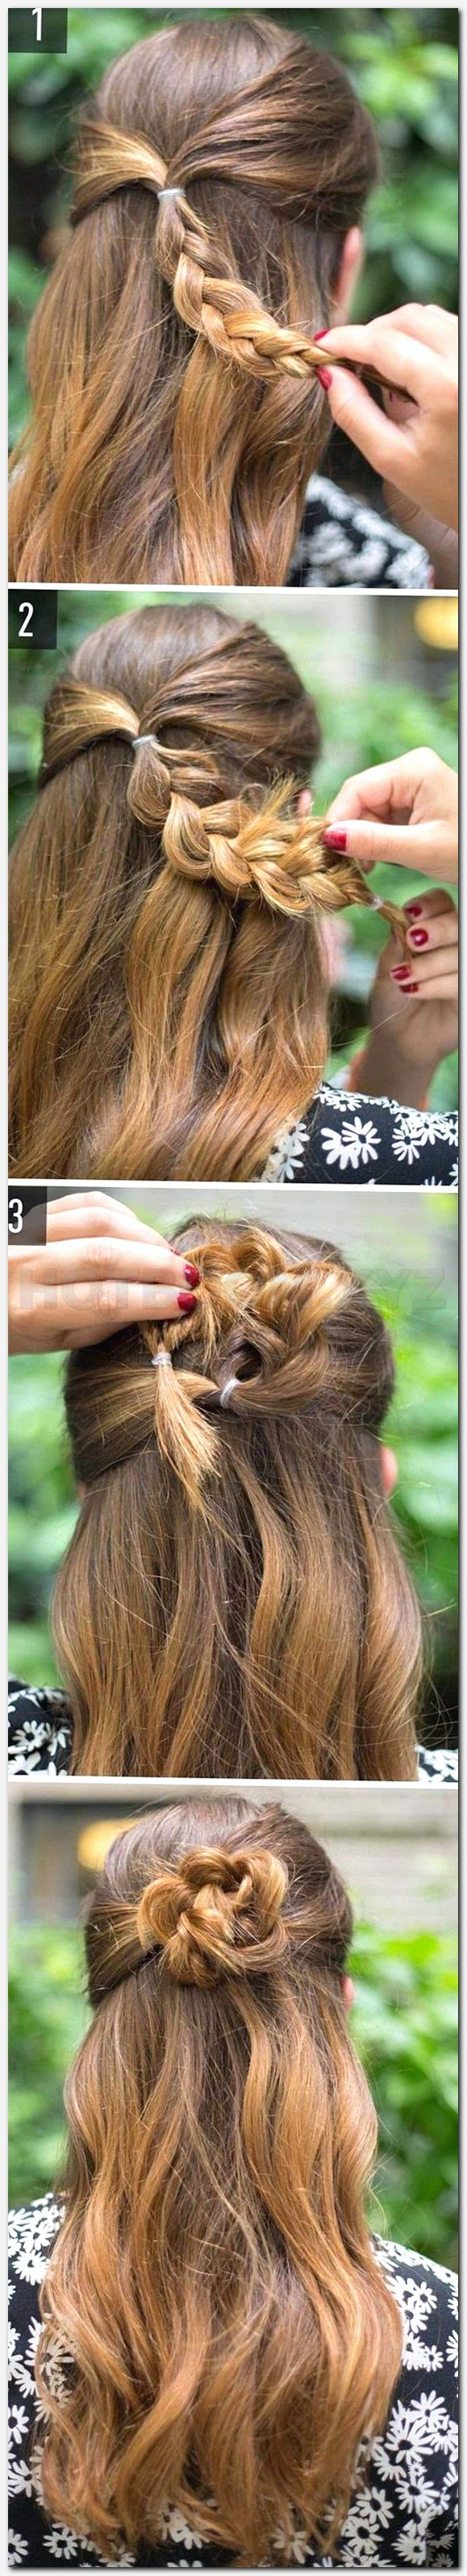 Haircut on round face styles for braided hair hair easy updo new